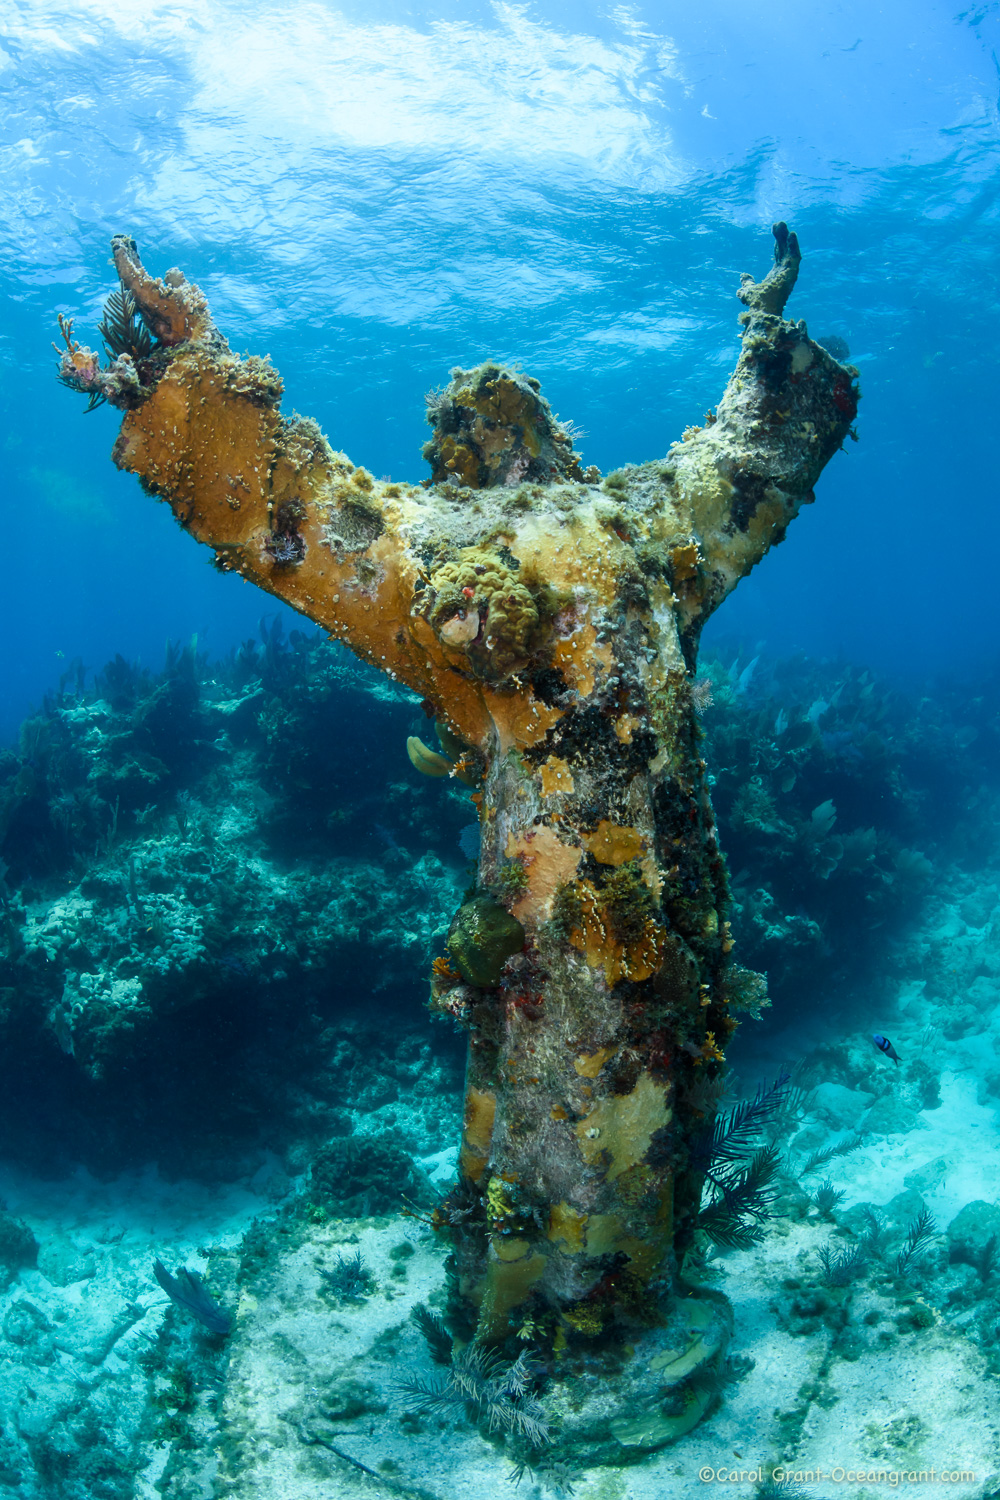 Christ of the Abyss,©CGrant-oceangrant.com